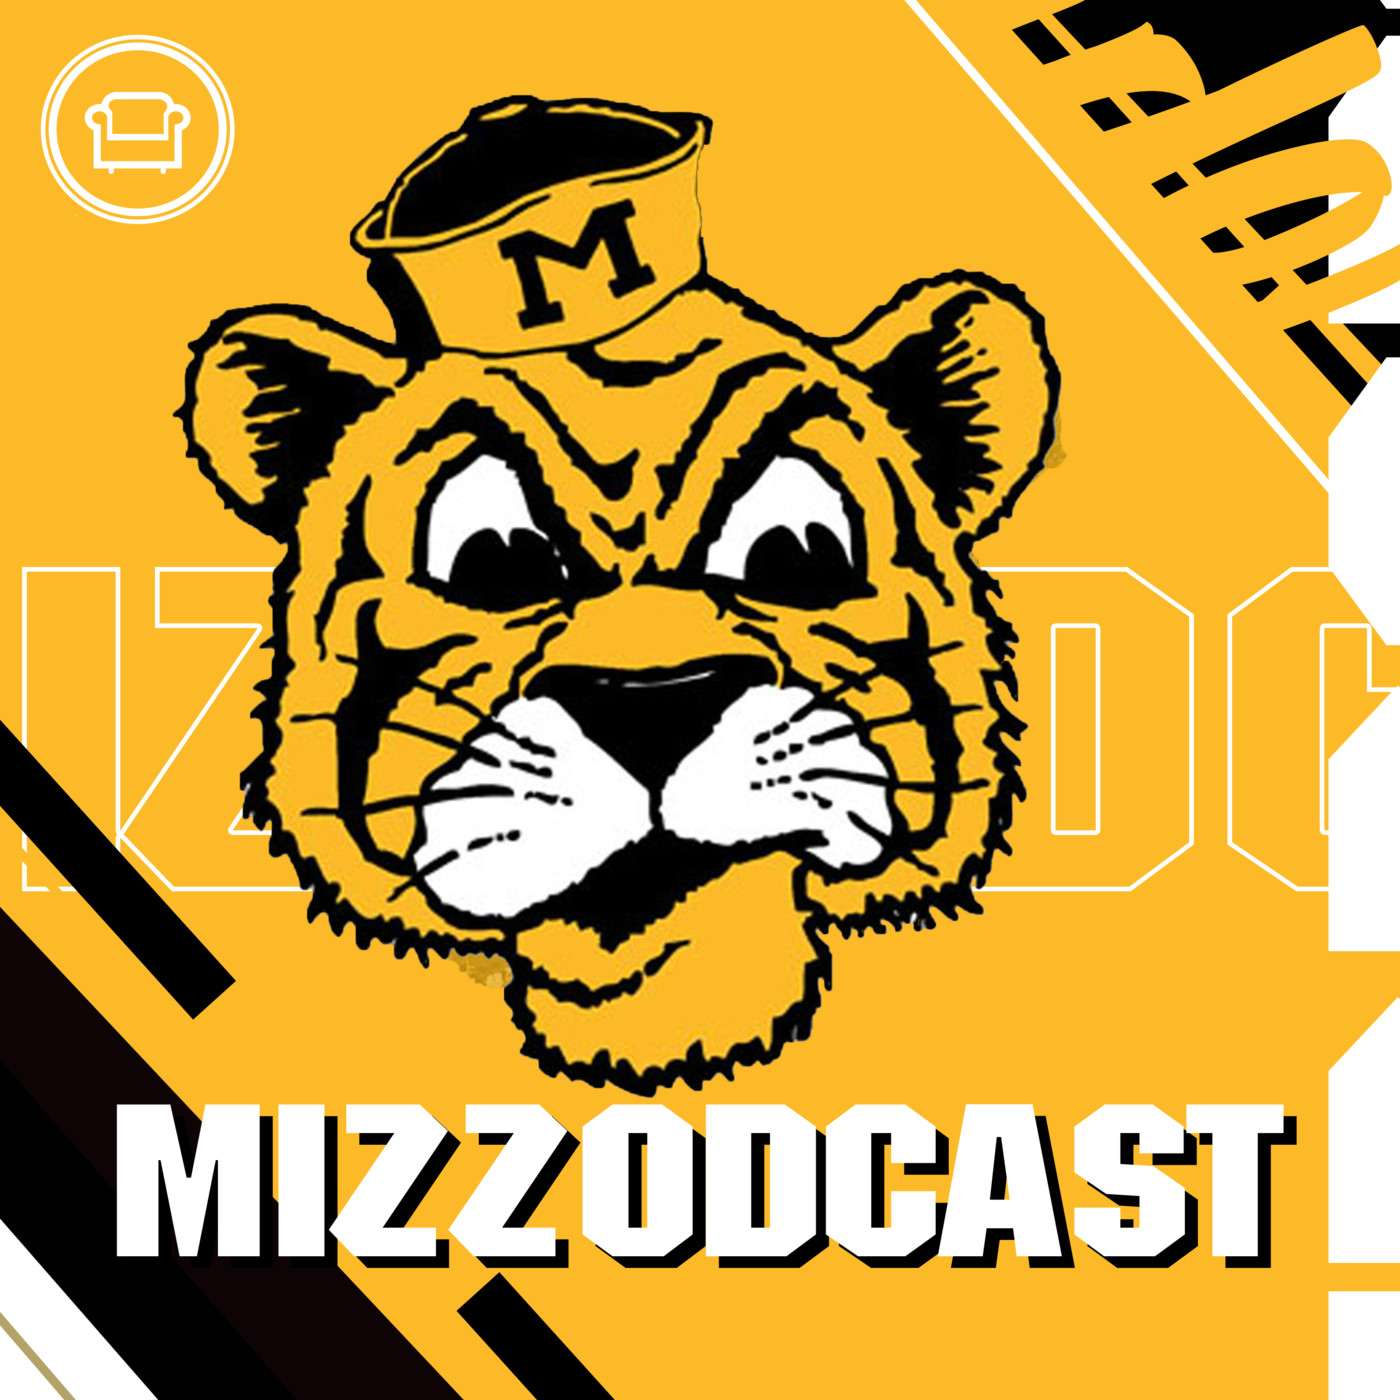 The Mizzodcast